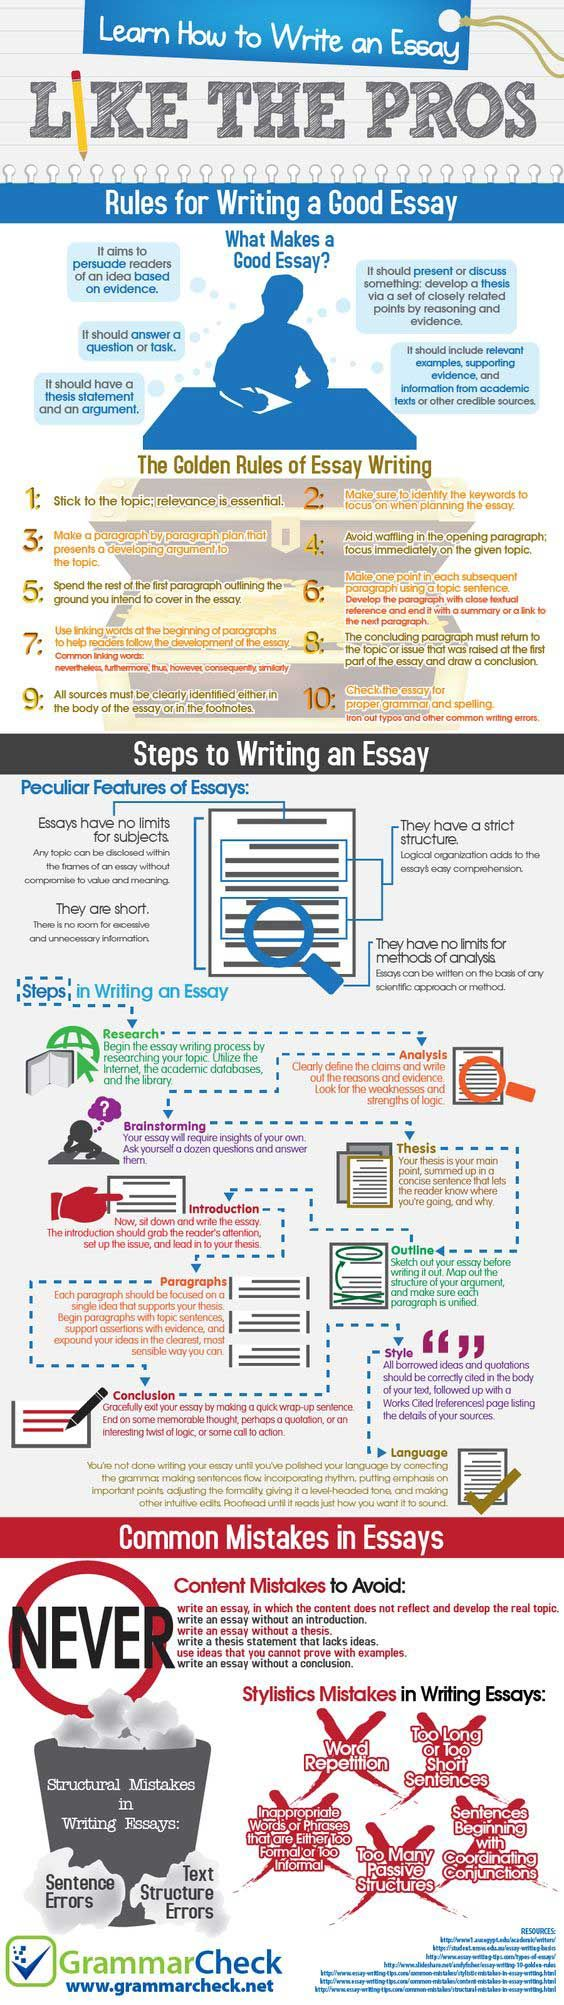 best ideas about journalism schools lawrence 18 infographics that will teach you how to write an a research paper or essay